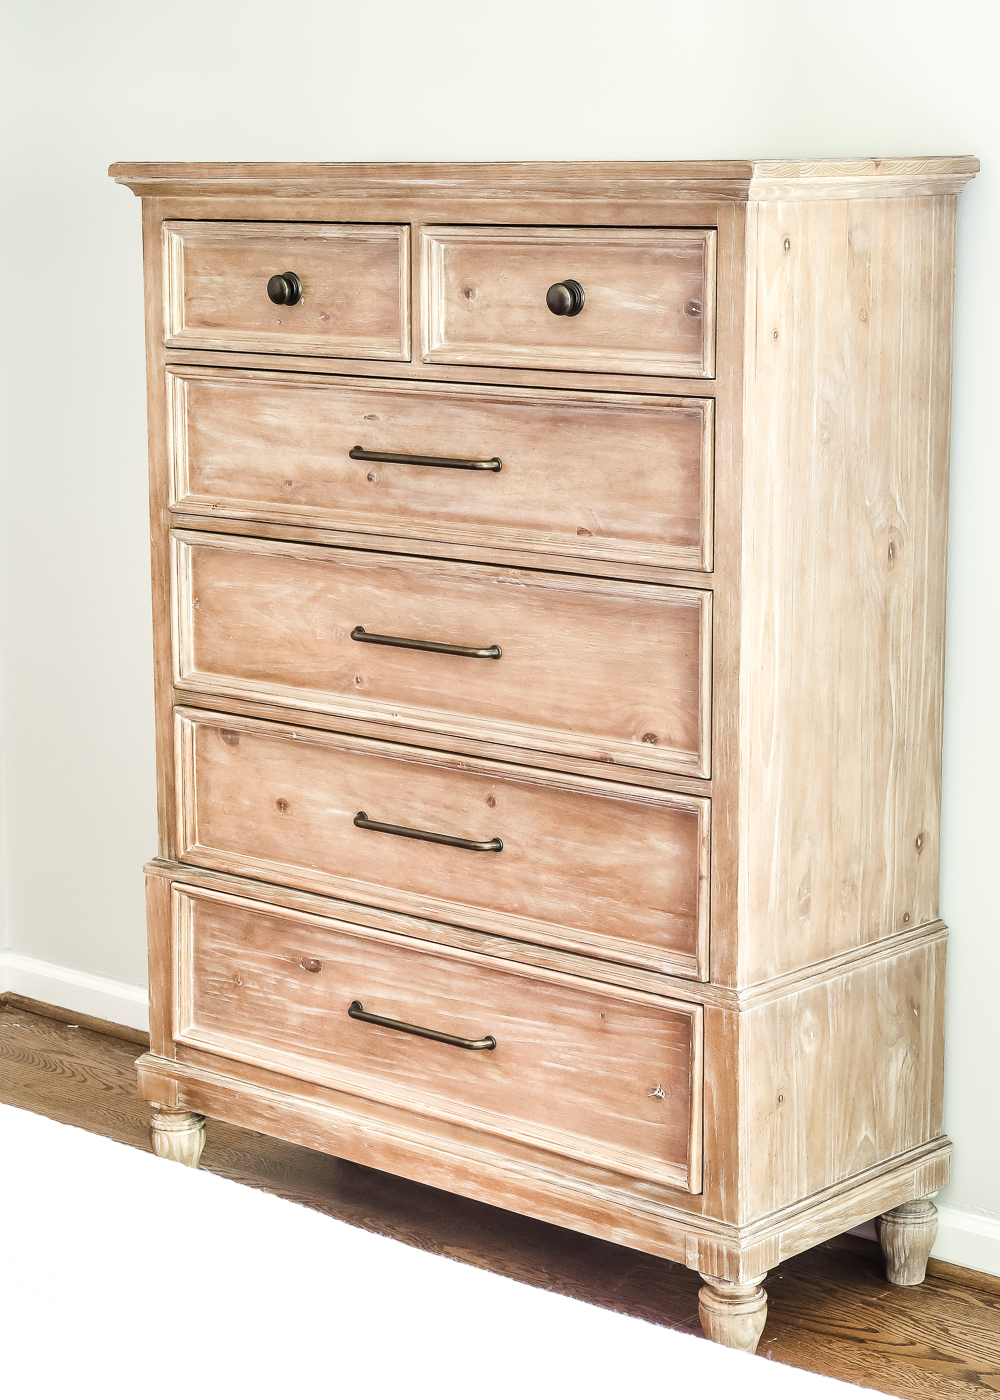 Majestic master bedroom update: pickled pine furniture | blesserhouse.com - the  beginnings of rbeodpu